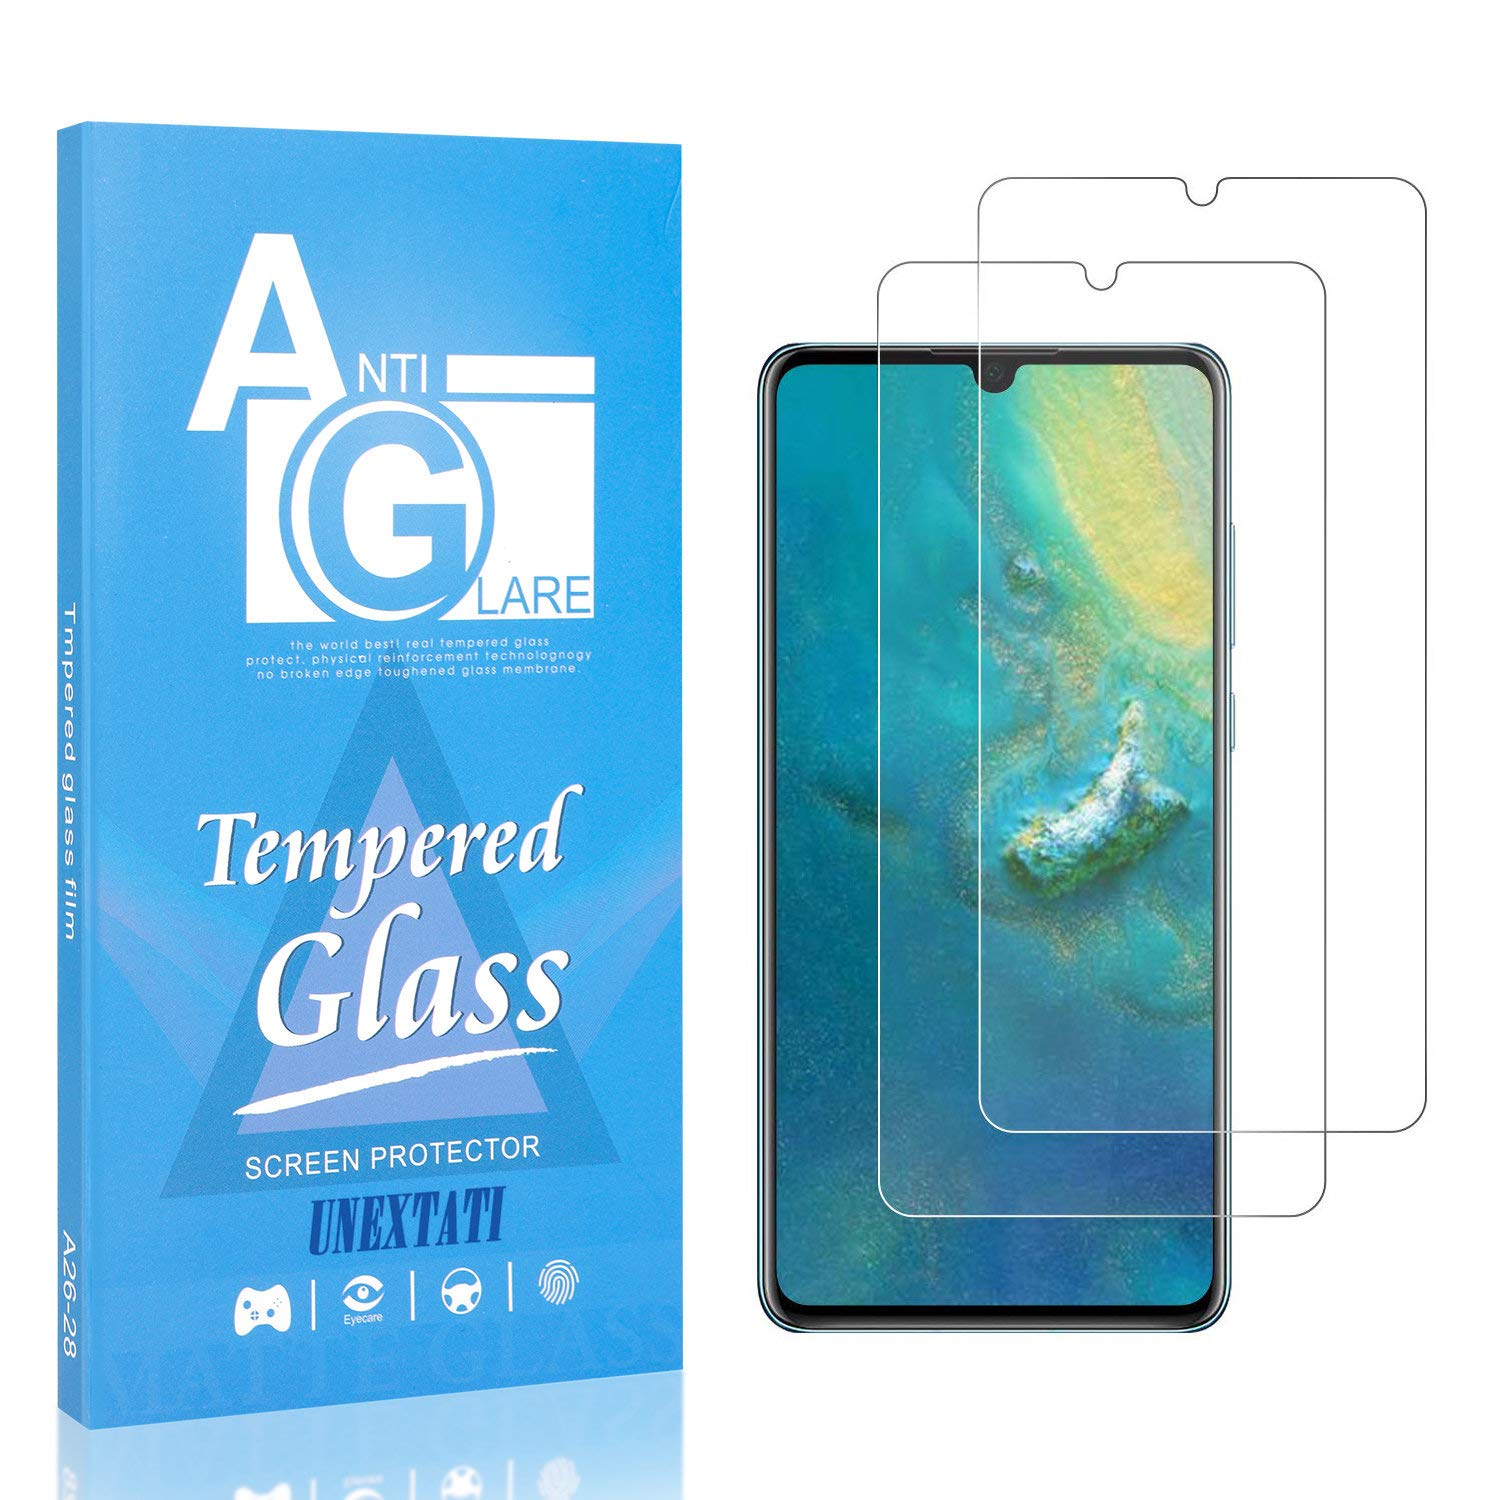 2 Pack Screen Protector for P30 9H Hardness HD Clear Tempered Glass Film UNEXTATI 3D Touch DoubleDefence Technology